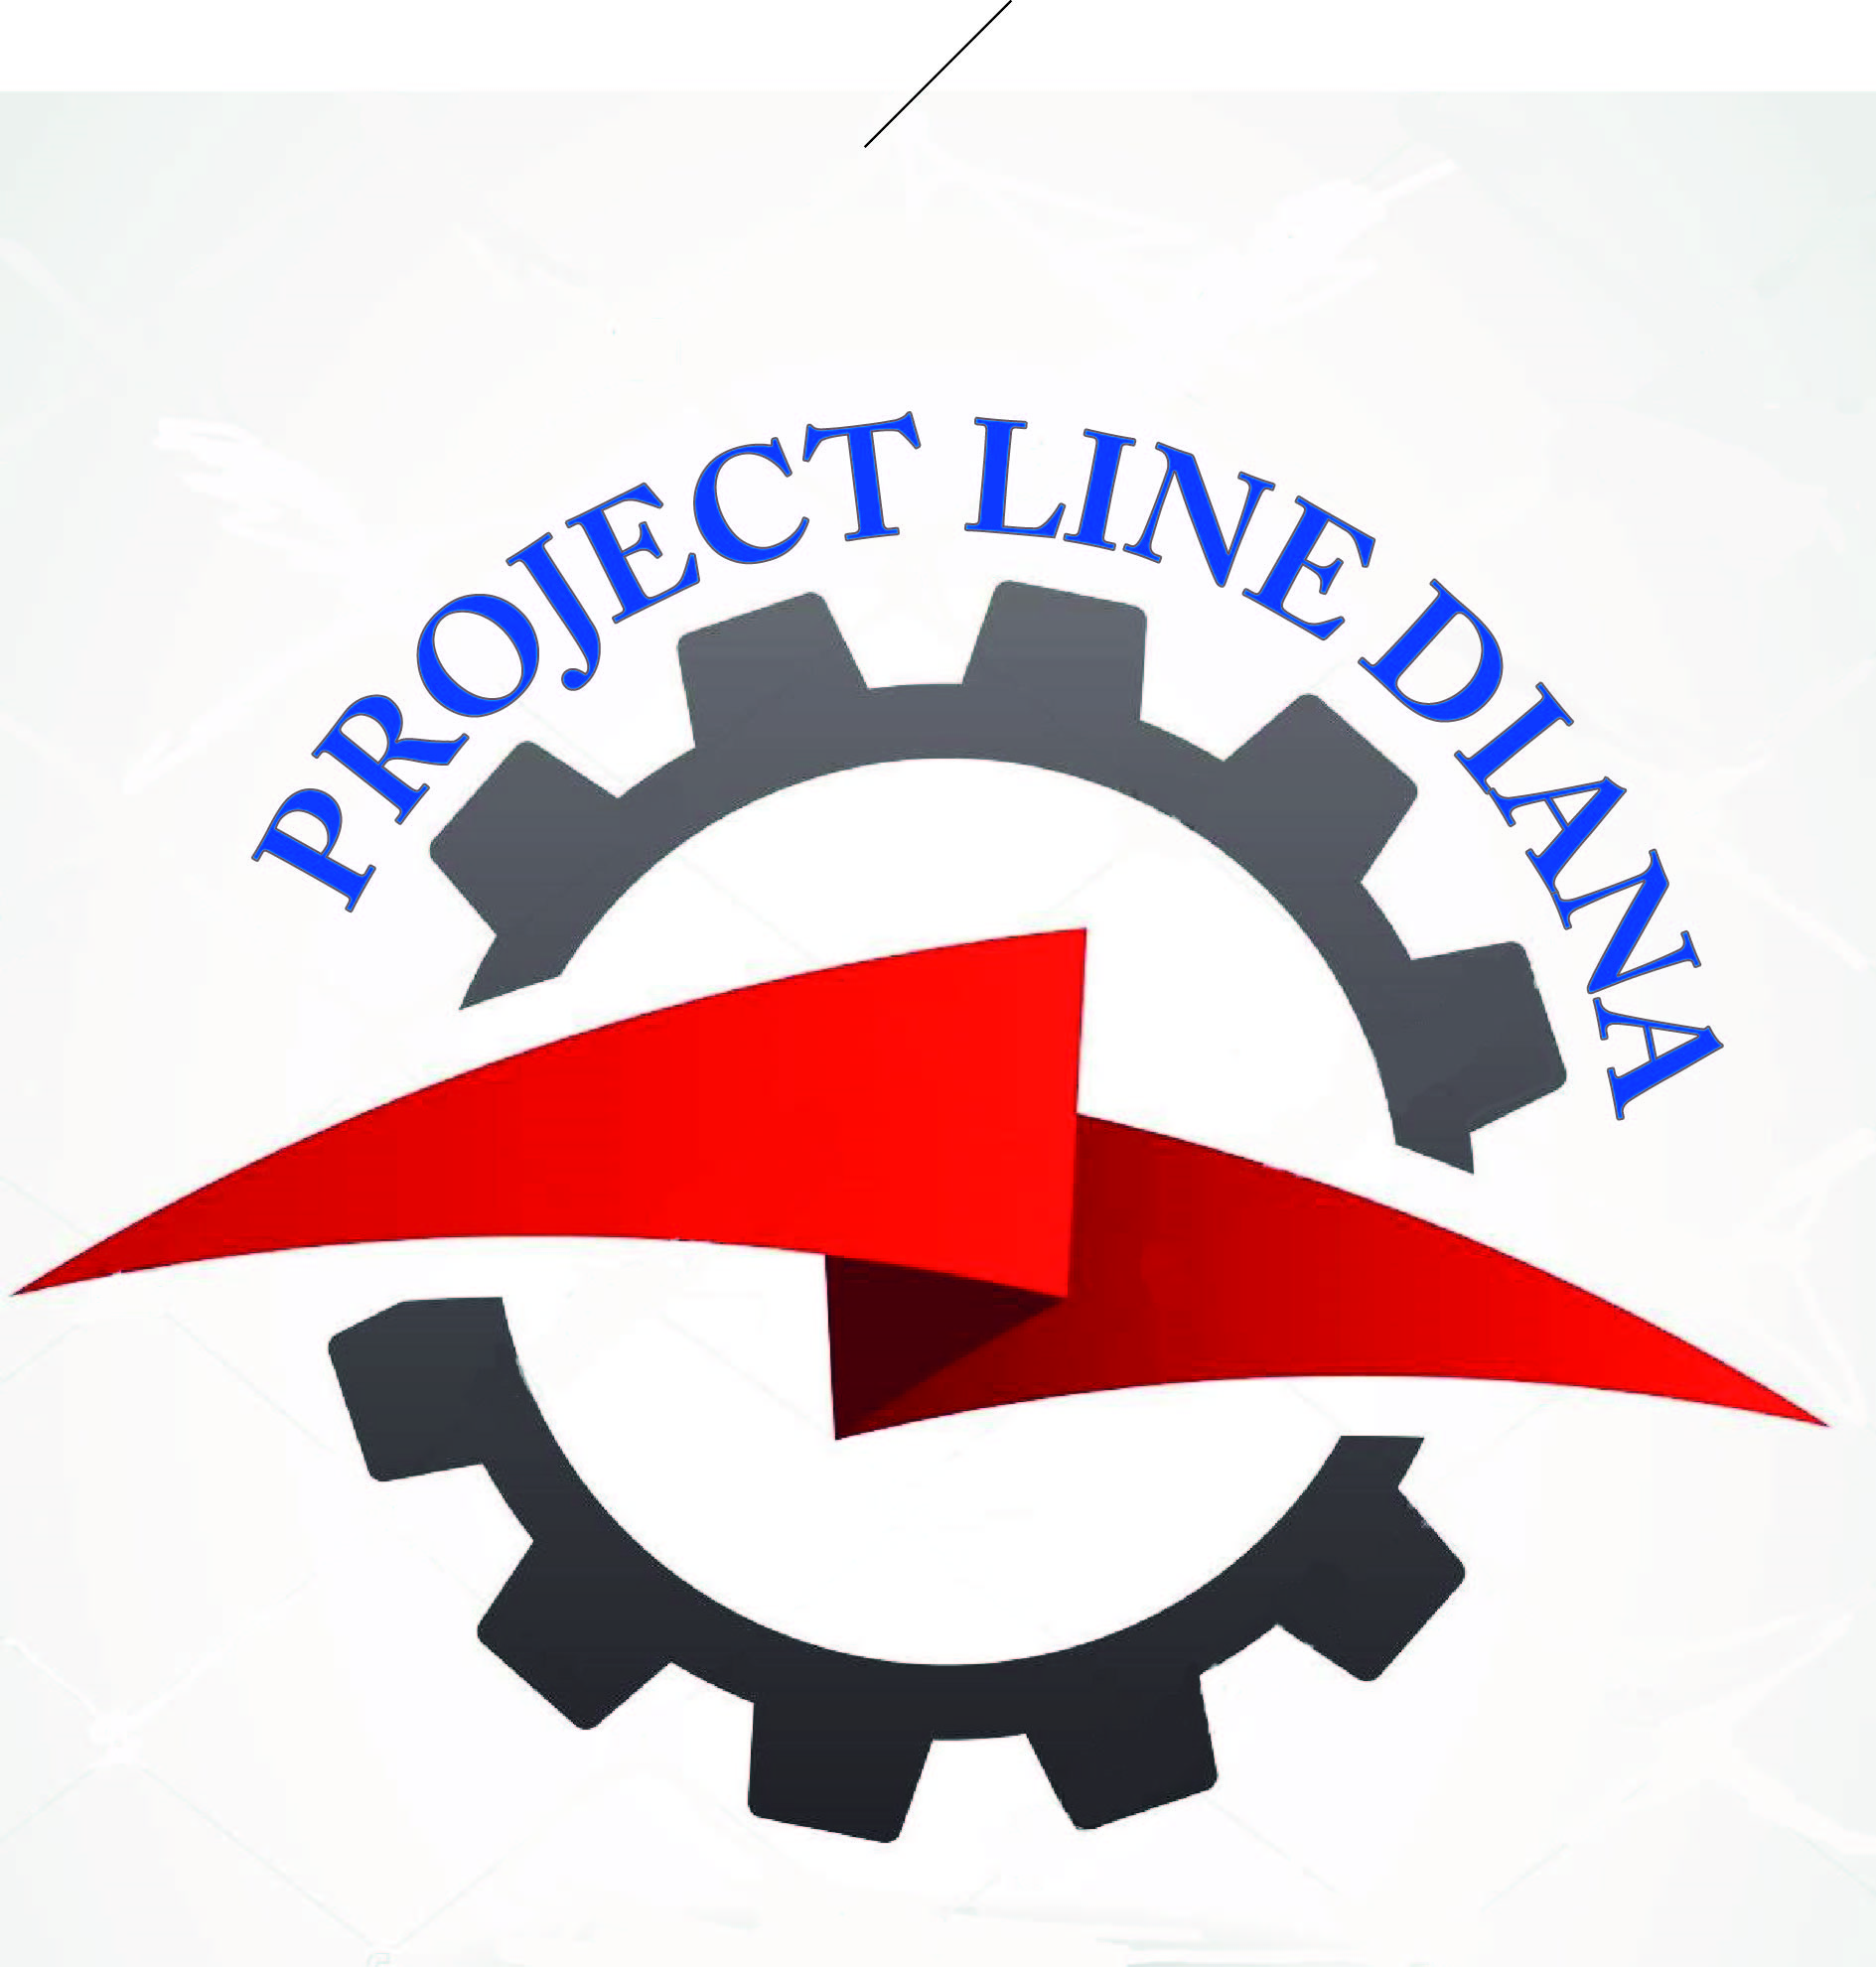 Project Line